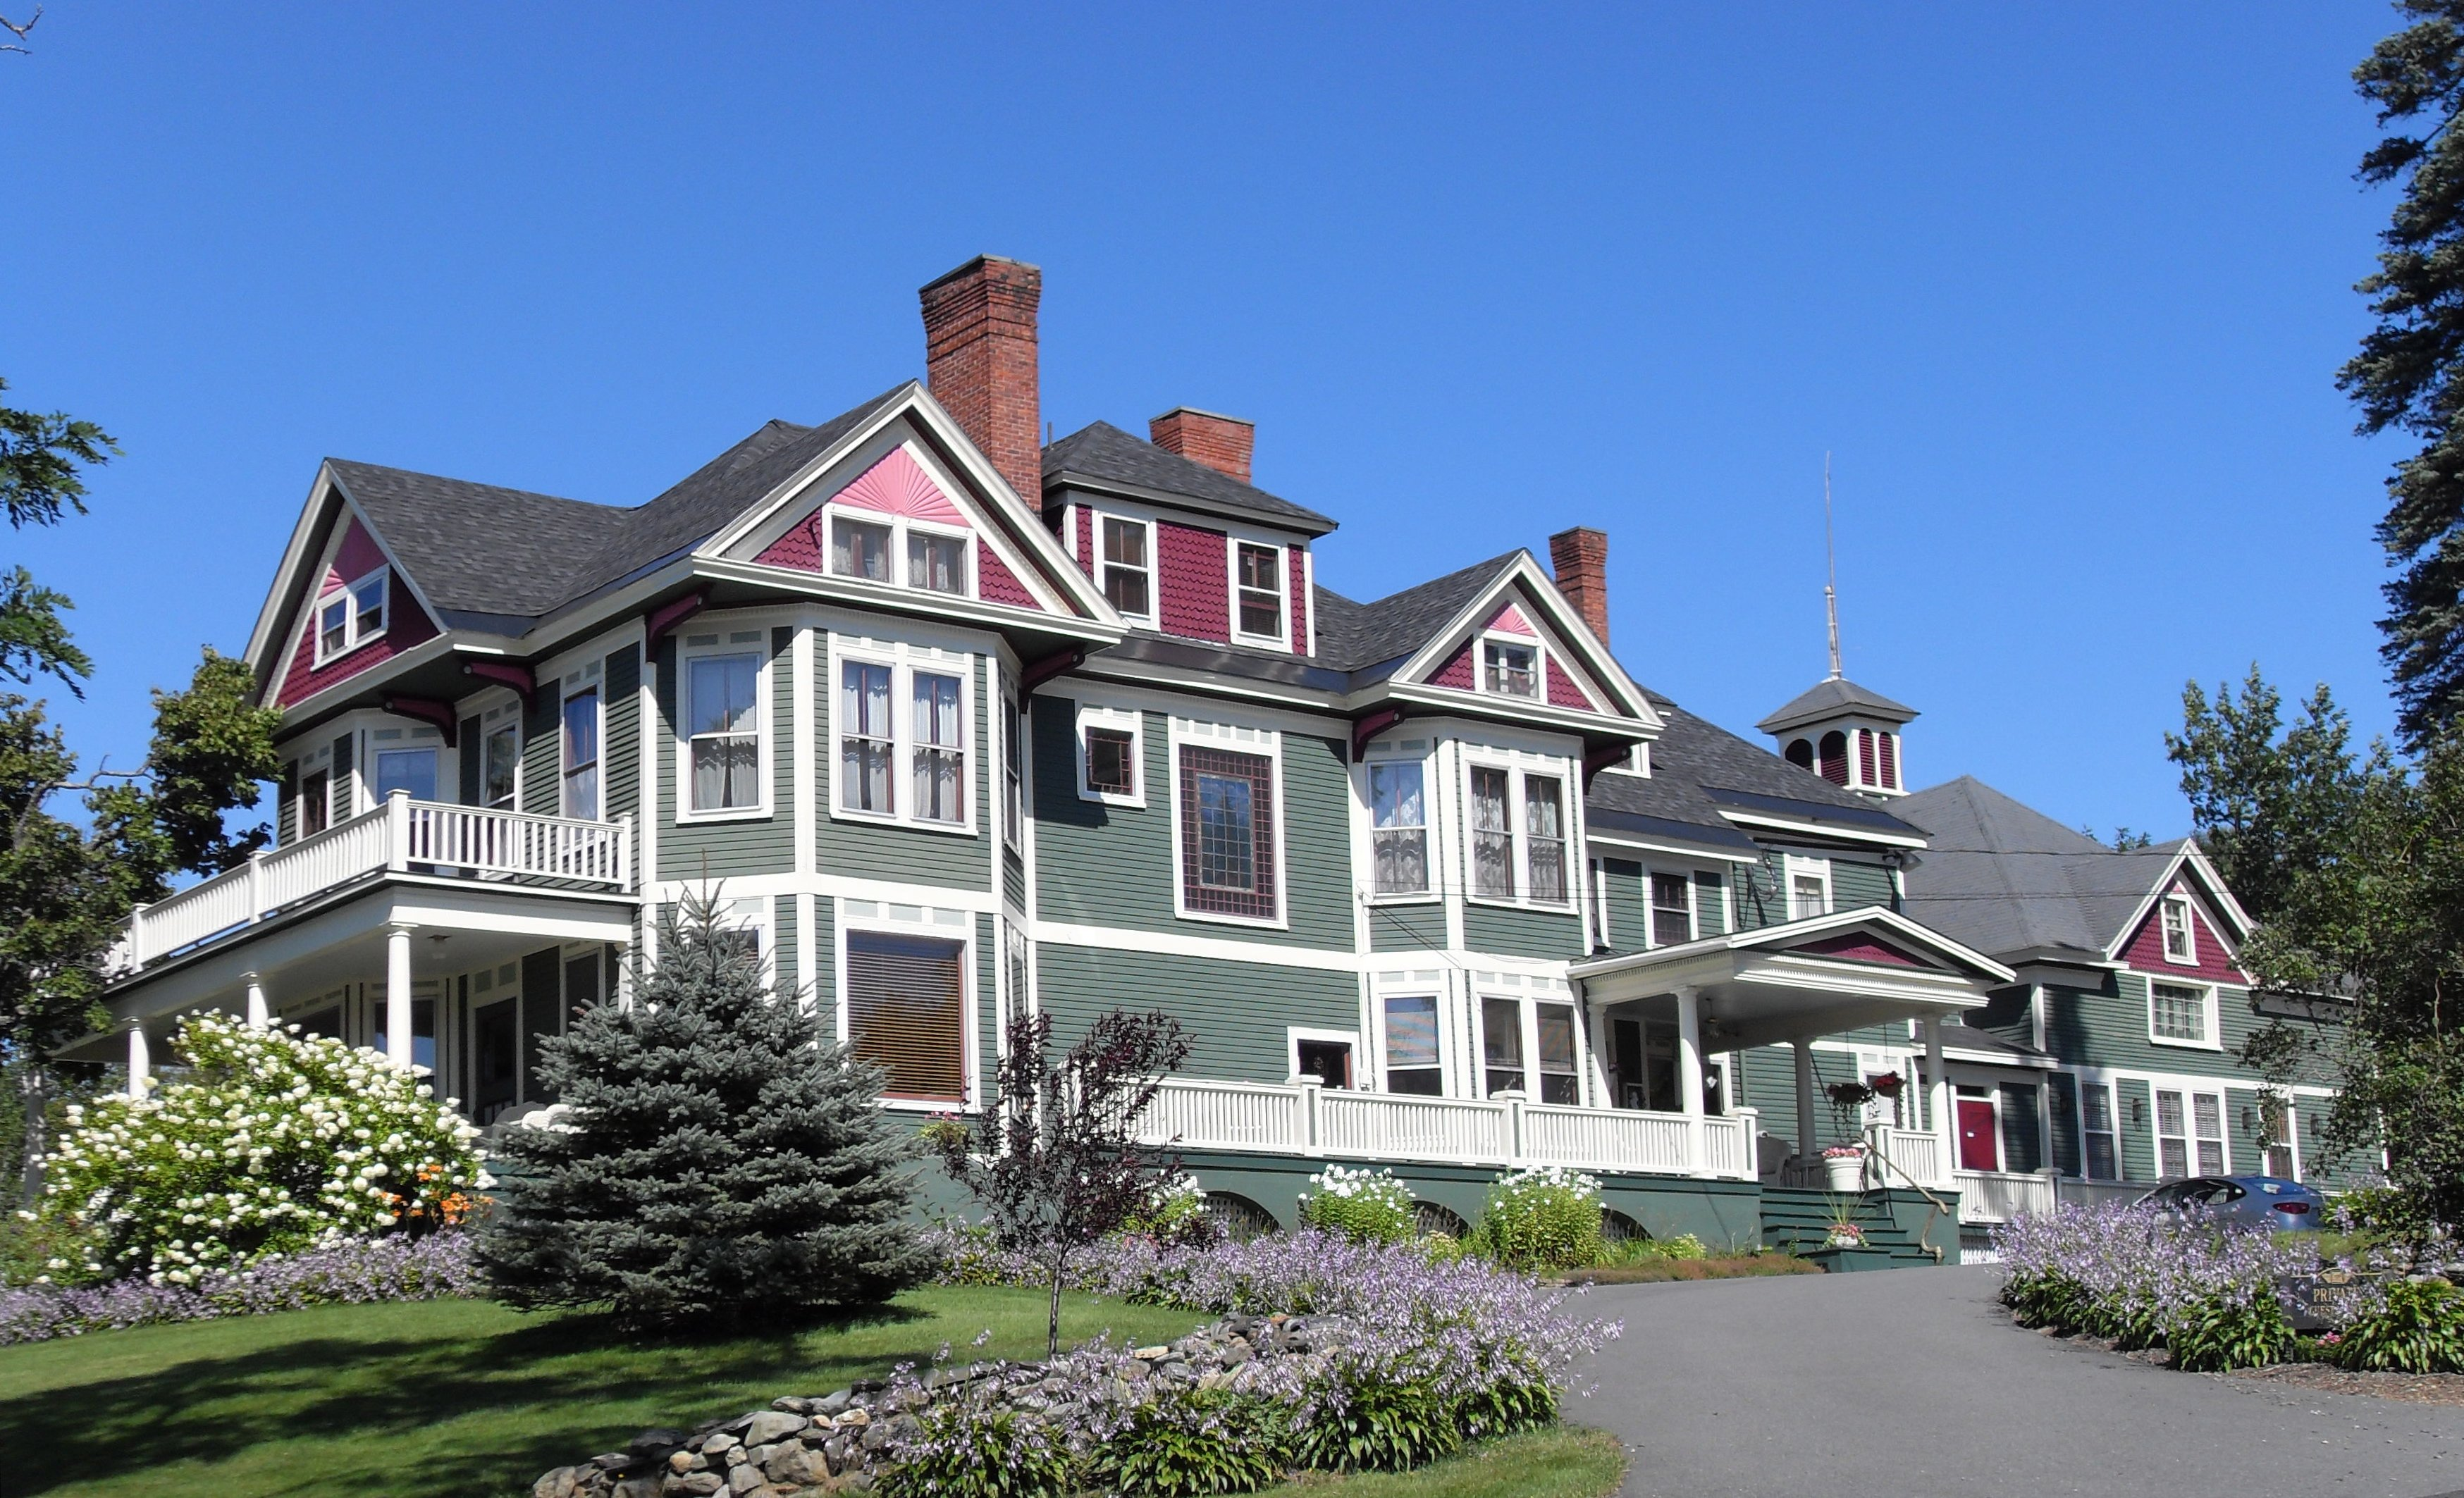 Historic Greenville Inn sits majestically overlooking Moosehead Lake, town of Greenville and Moose Mountain Range.